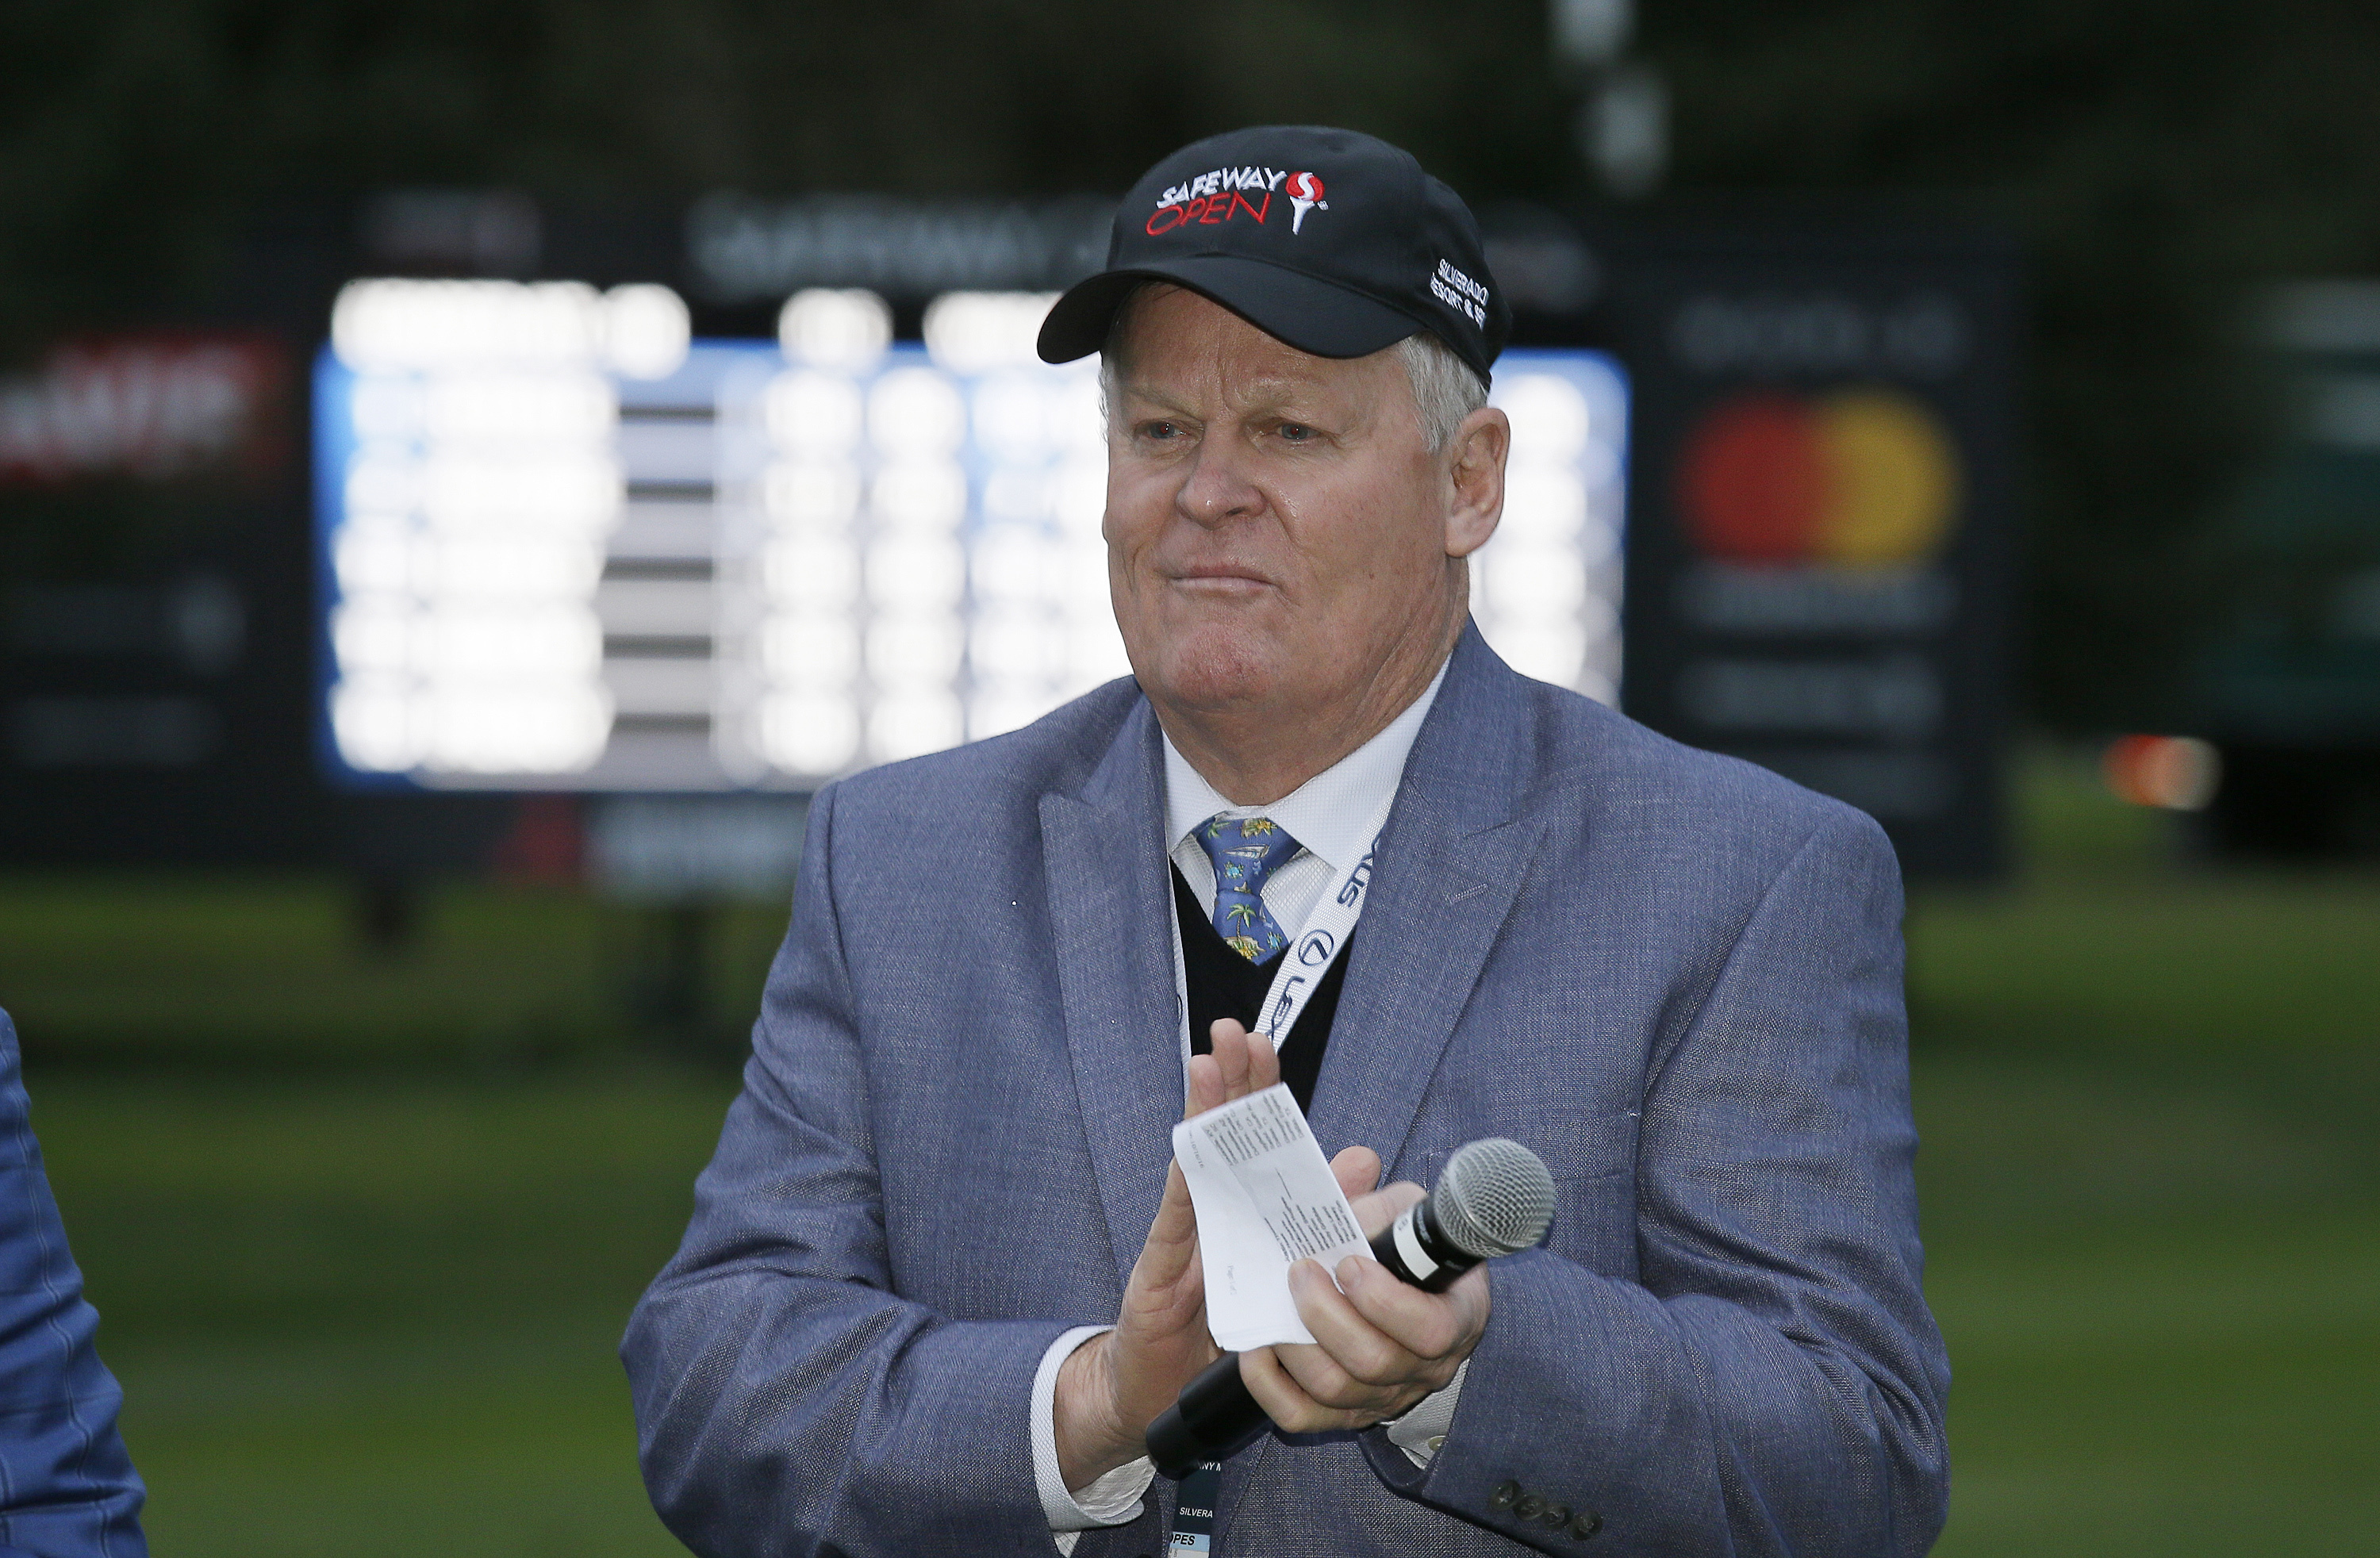 FILE - In this Oct. 16, 2016, file photo, Johnny Miller stands on the 18th green of the Silverado Resort North Course during the trophy presentation of the Safeway Open PGA golf tournament, in Napa, Calif. Television viewers haven't heard the last of John